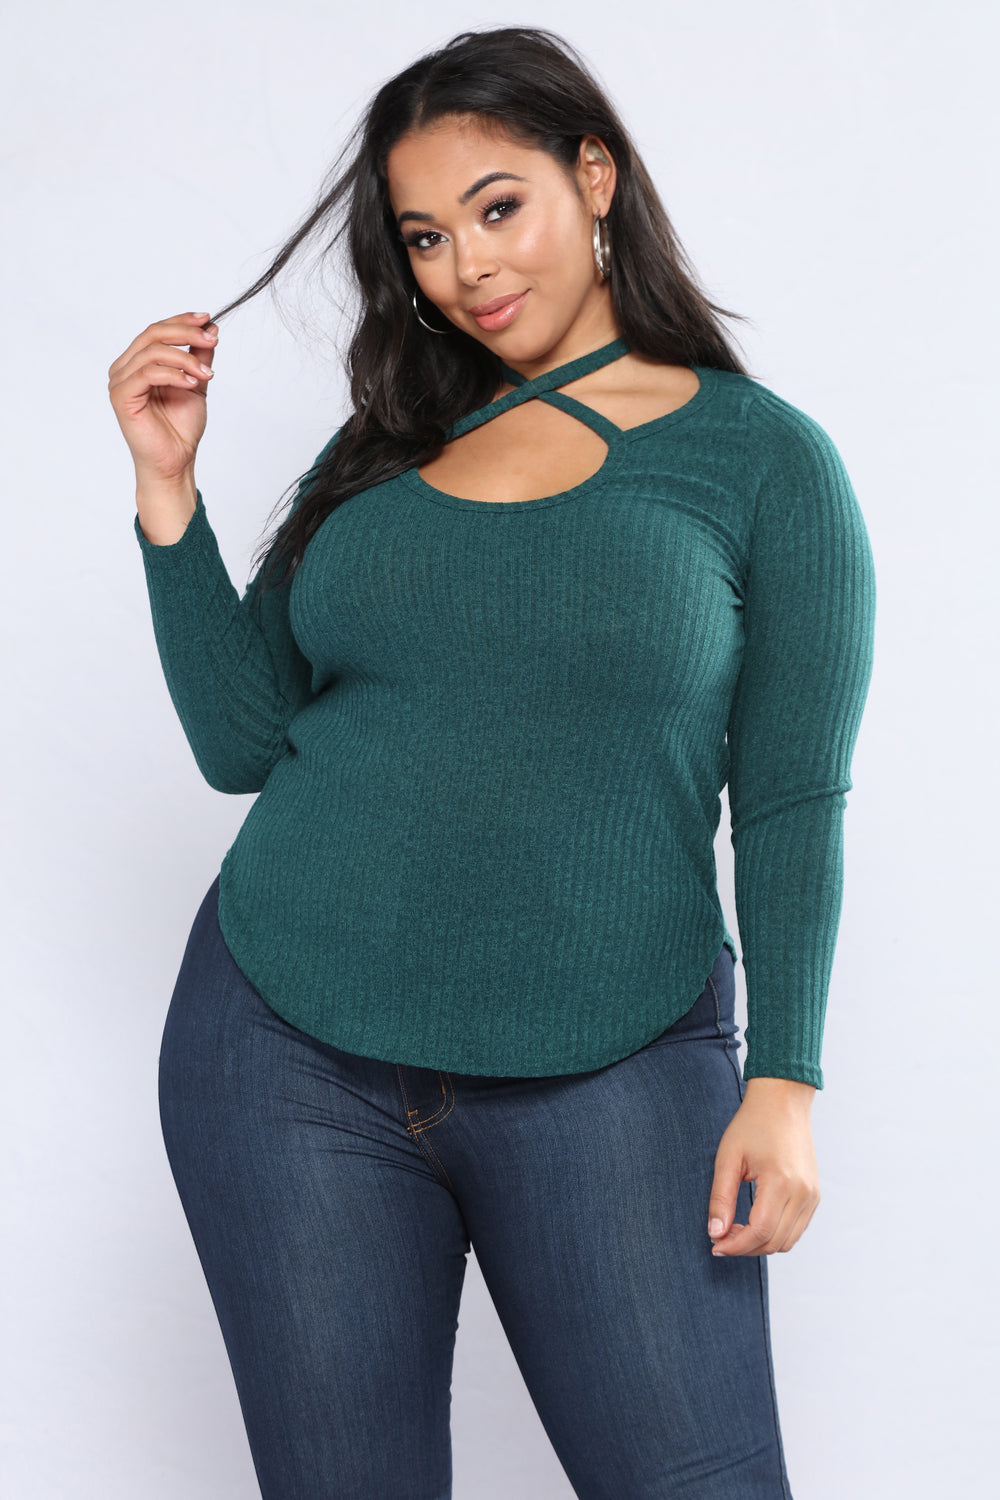 I Hold The Key Long Sleeve Top - Hunter Green